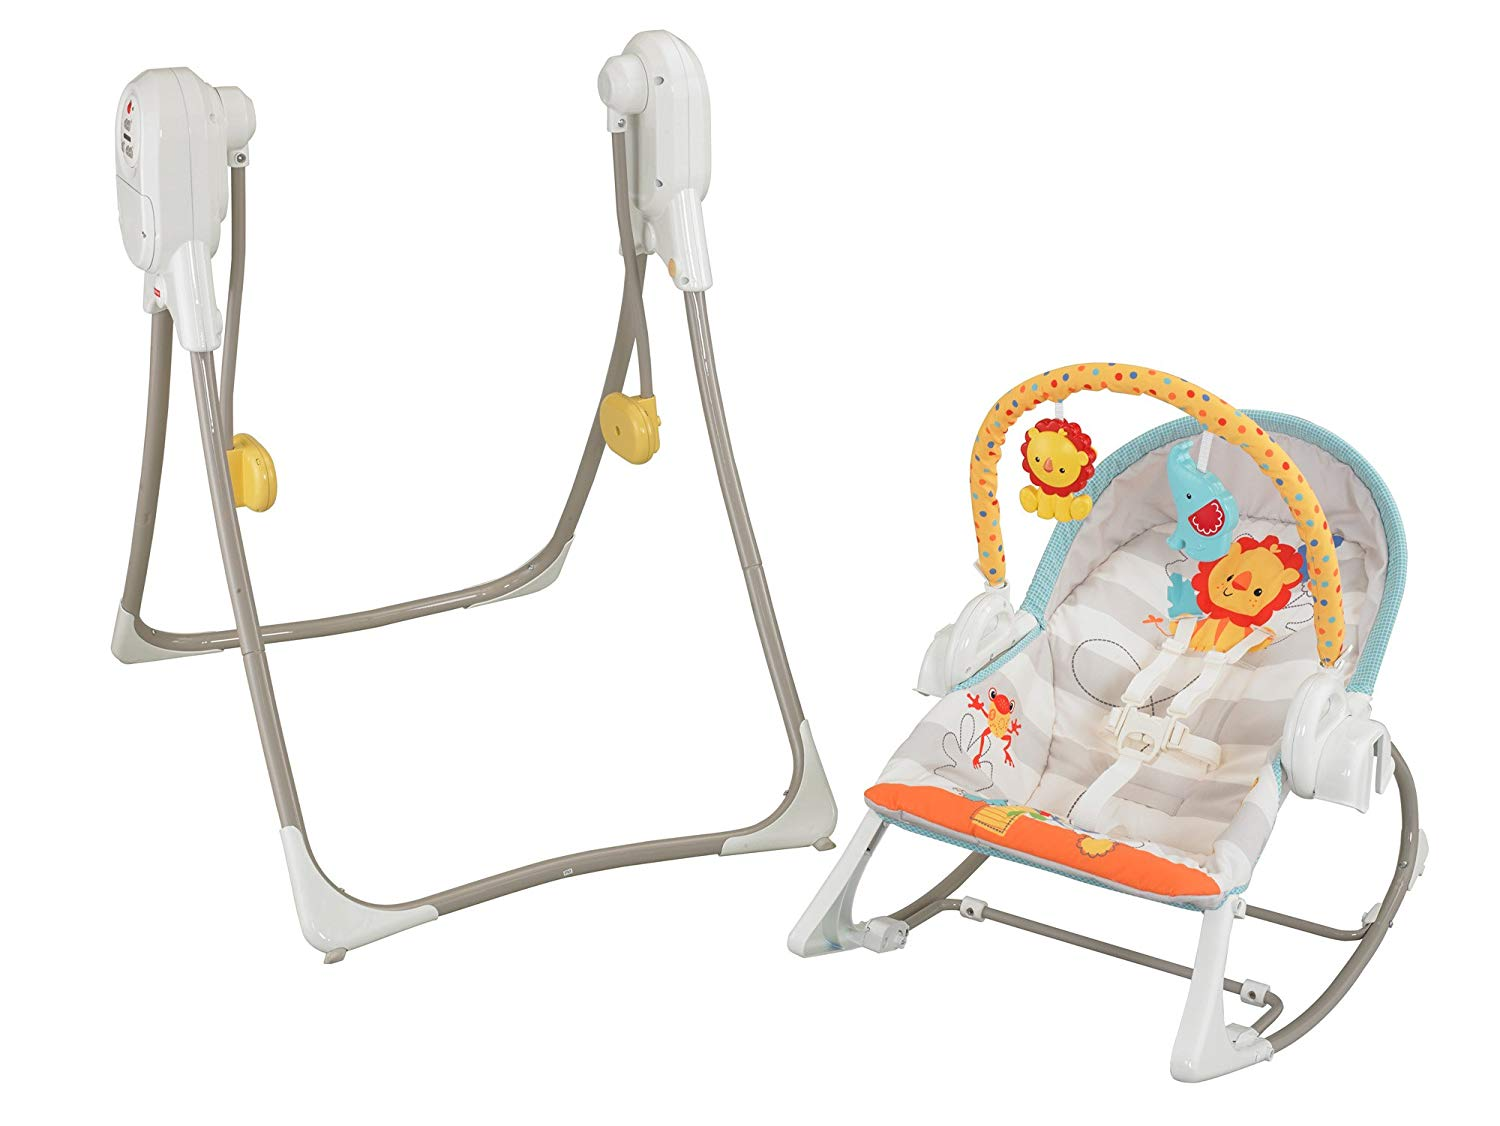 Fisher Price 3-in-1 Swing 'n Rocker | Toys for babies. toddlers. and kids | Whirli™ Toy Sharing Subscription Box | Whirli